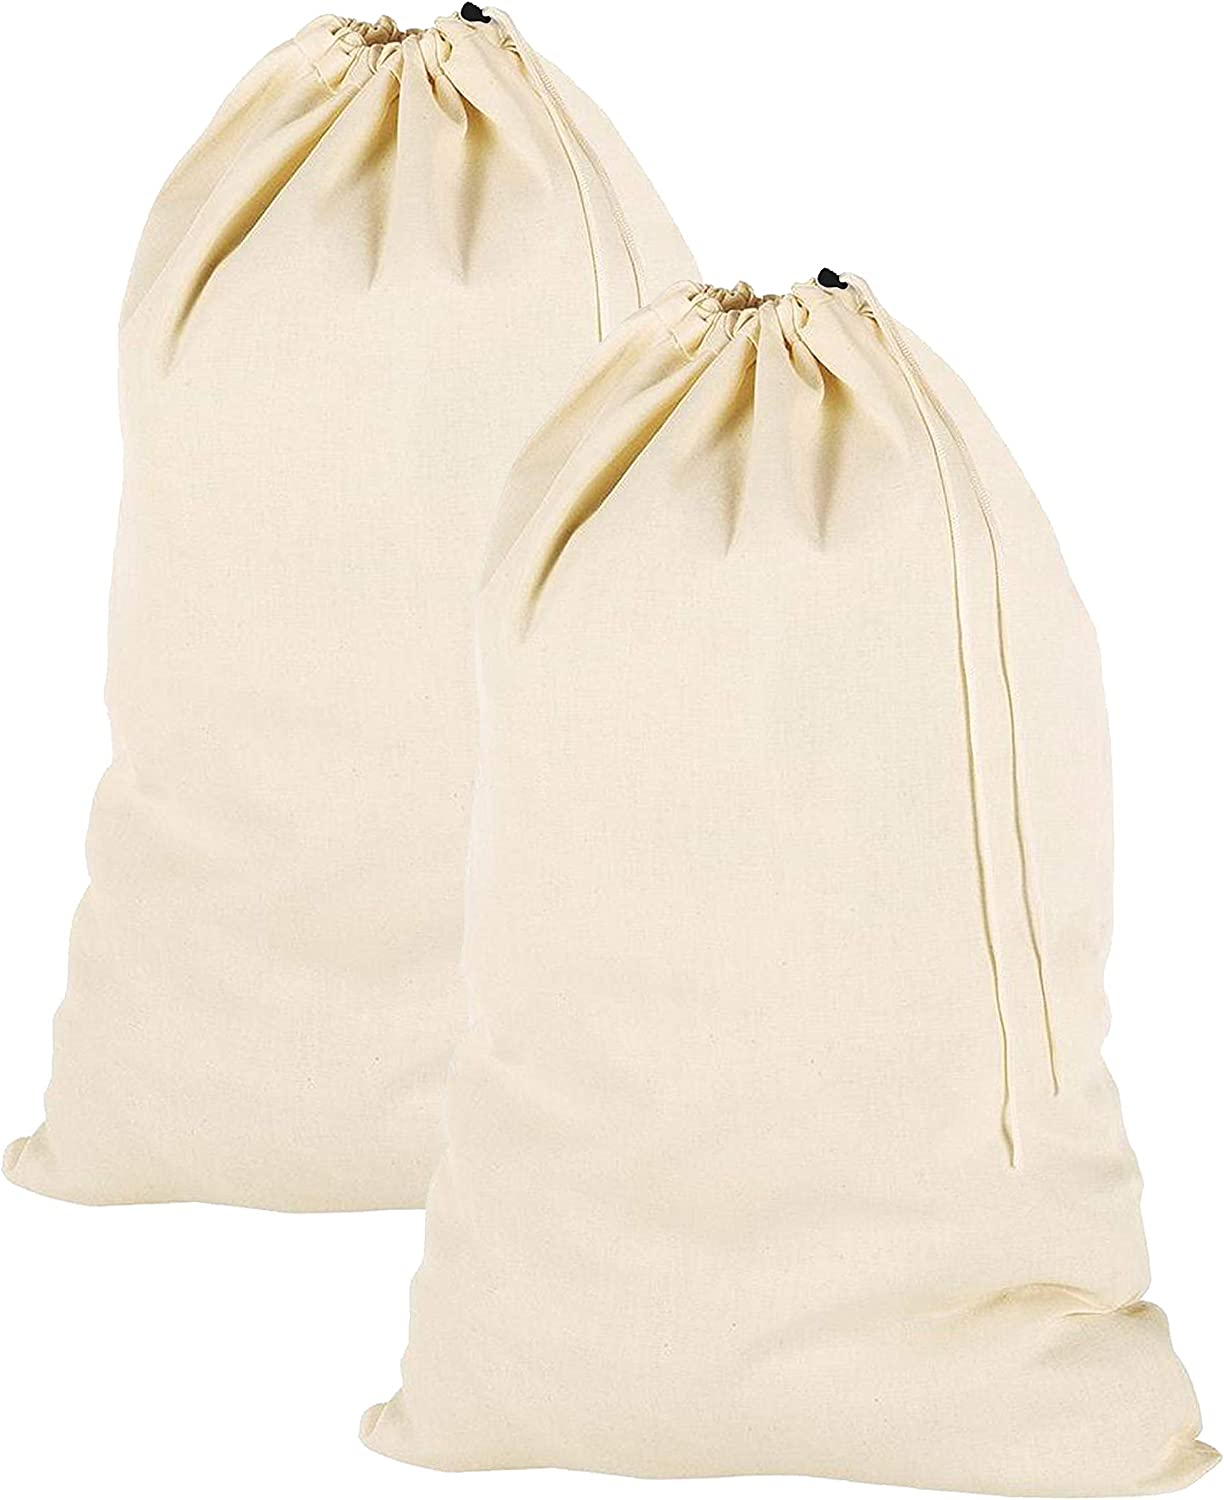 """2 Pack Extra Large 100/% Cotton Canvas Heavy Duty Laundry Bags Natural 28/""""x36/"""""""